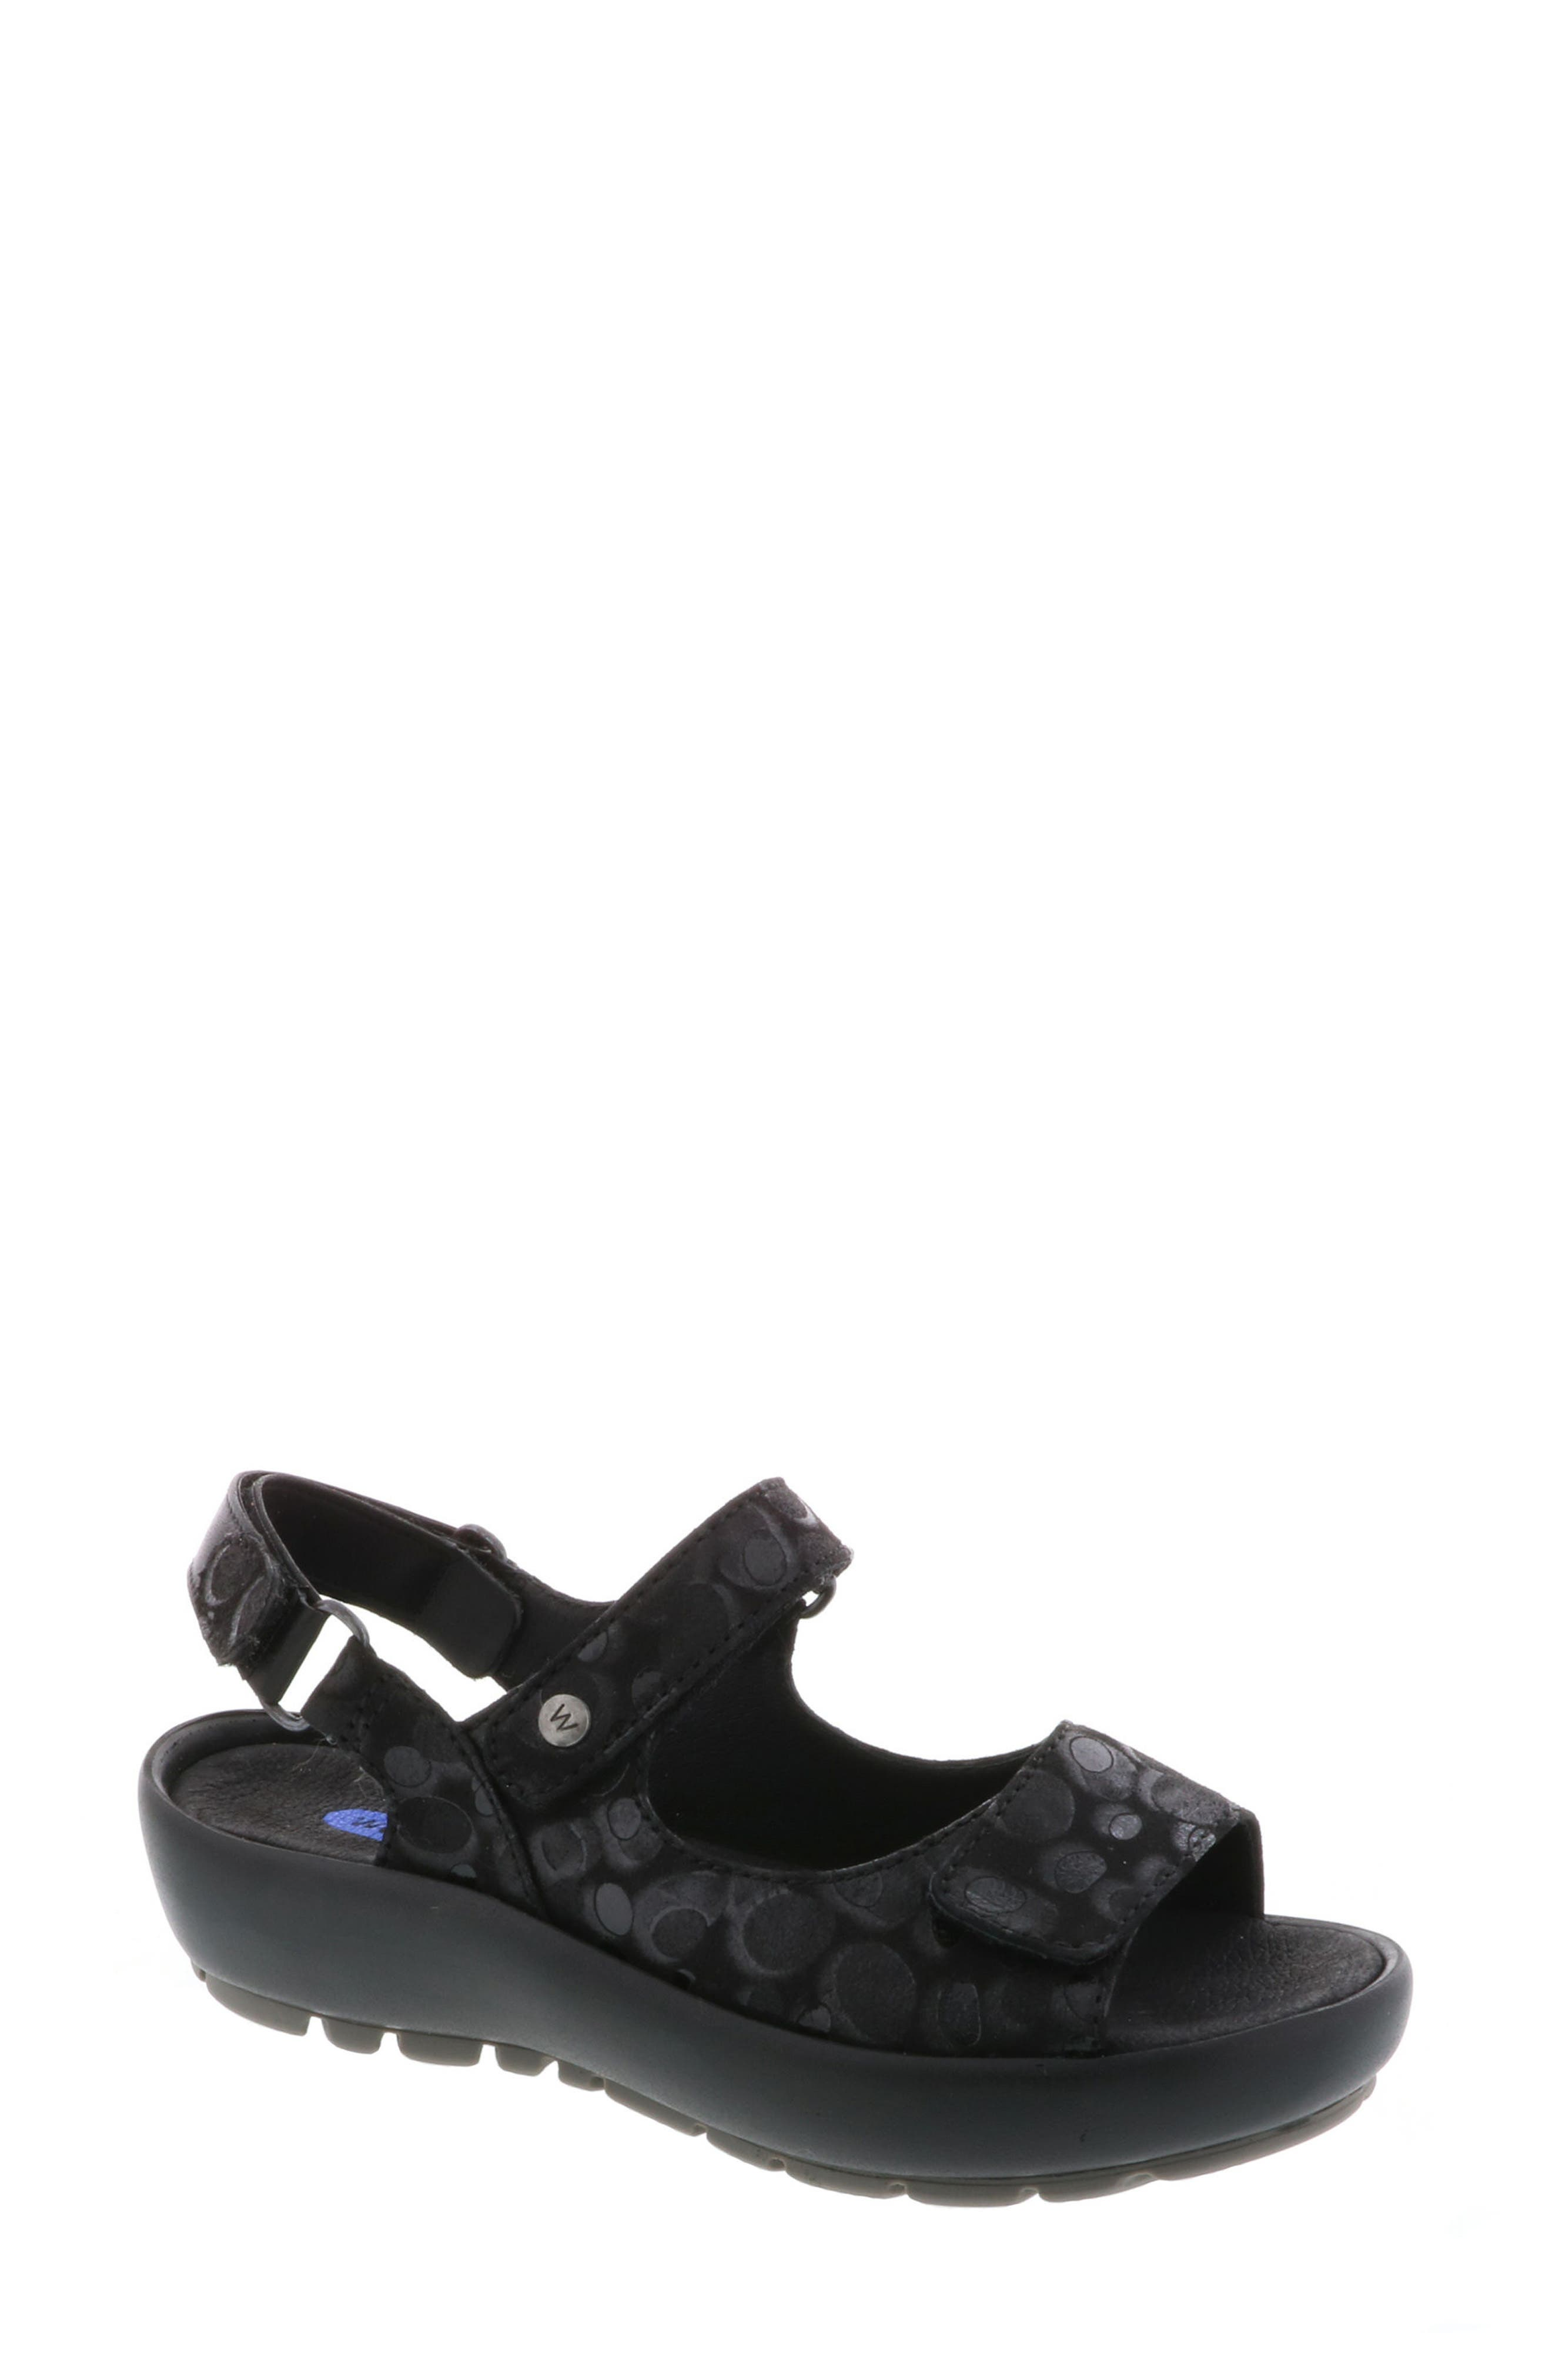 Rio Sandal,                             Main thumbnail 1, color,                             BLACK CIRCLE PRINT